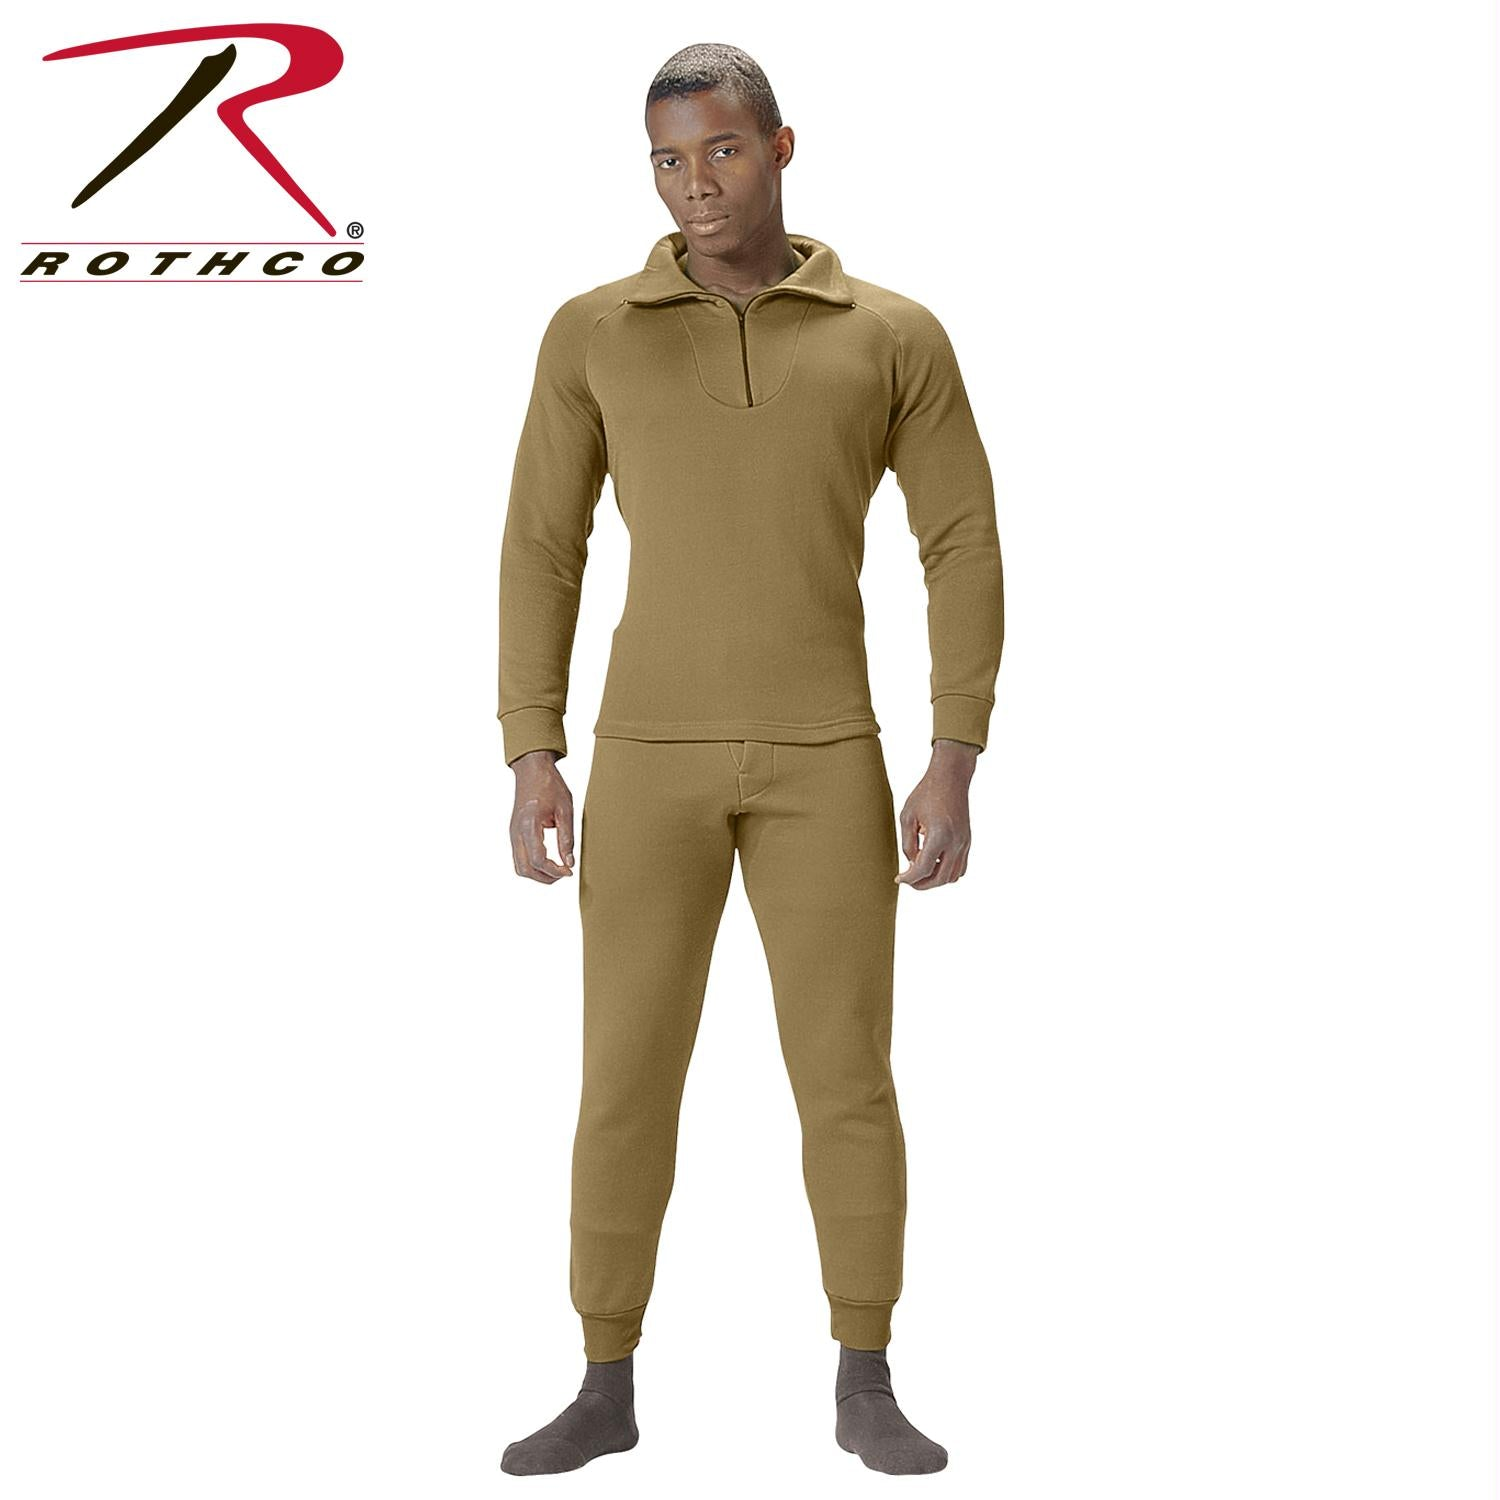 Rothco ECWCS Poly Bottoms - AR 670-1 Coyote Brown / M